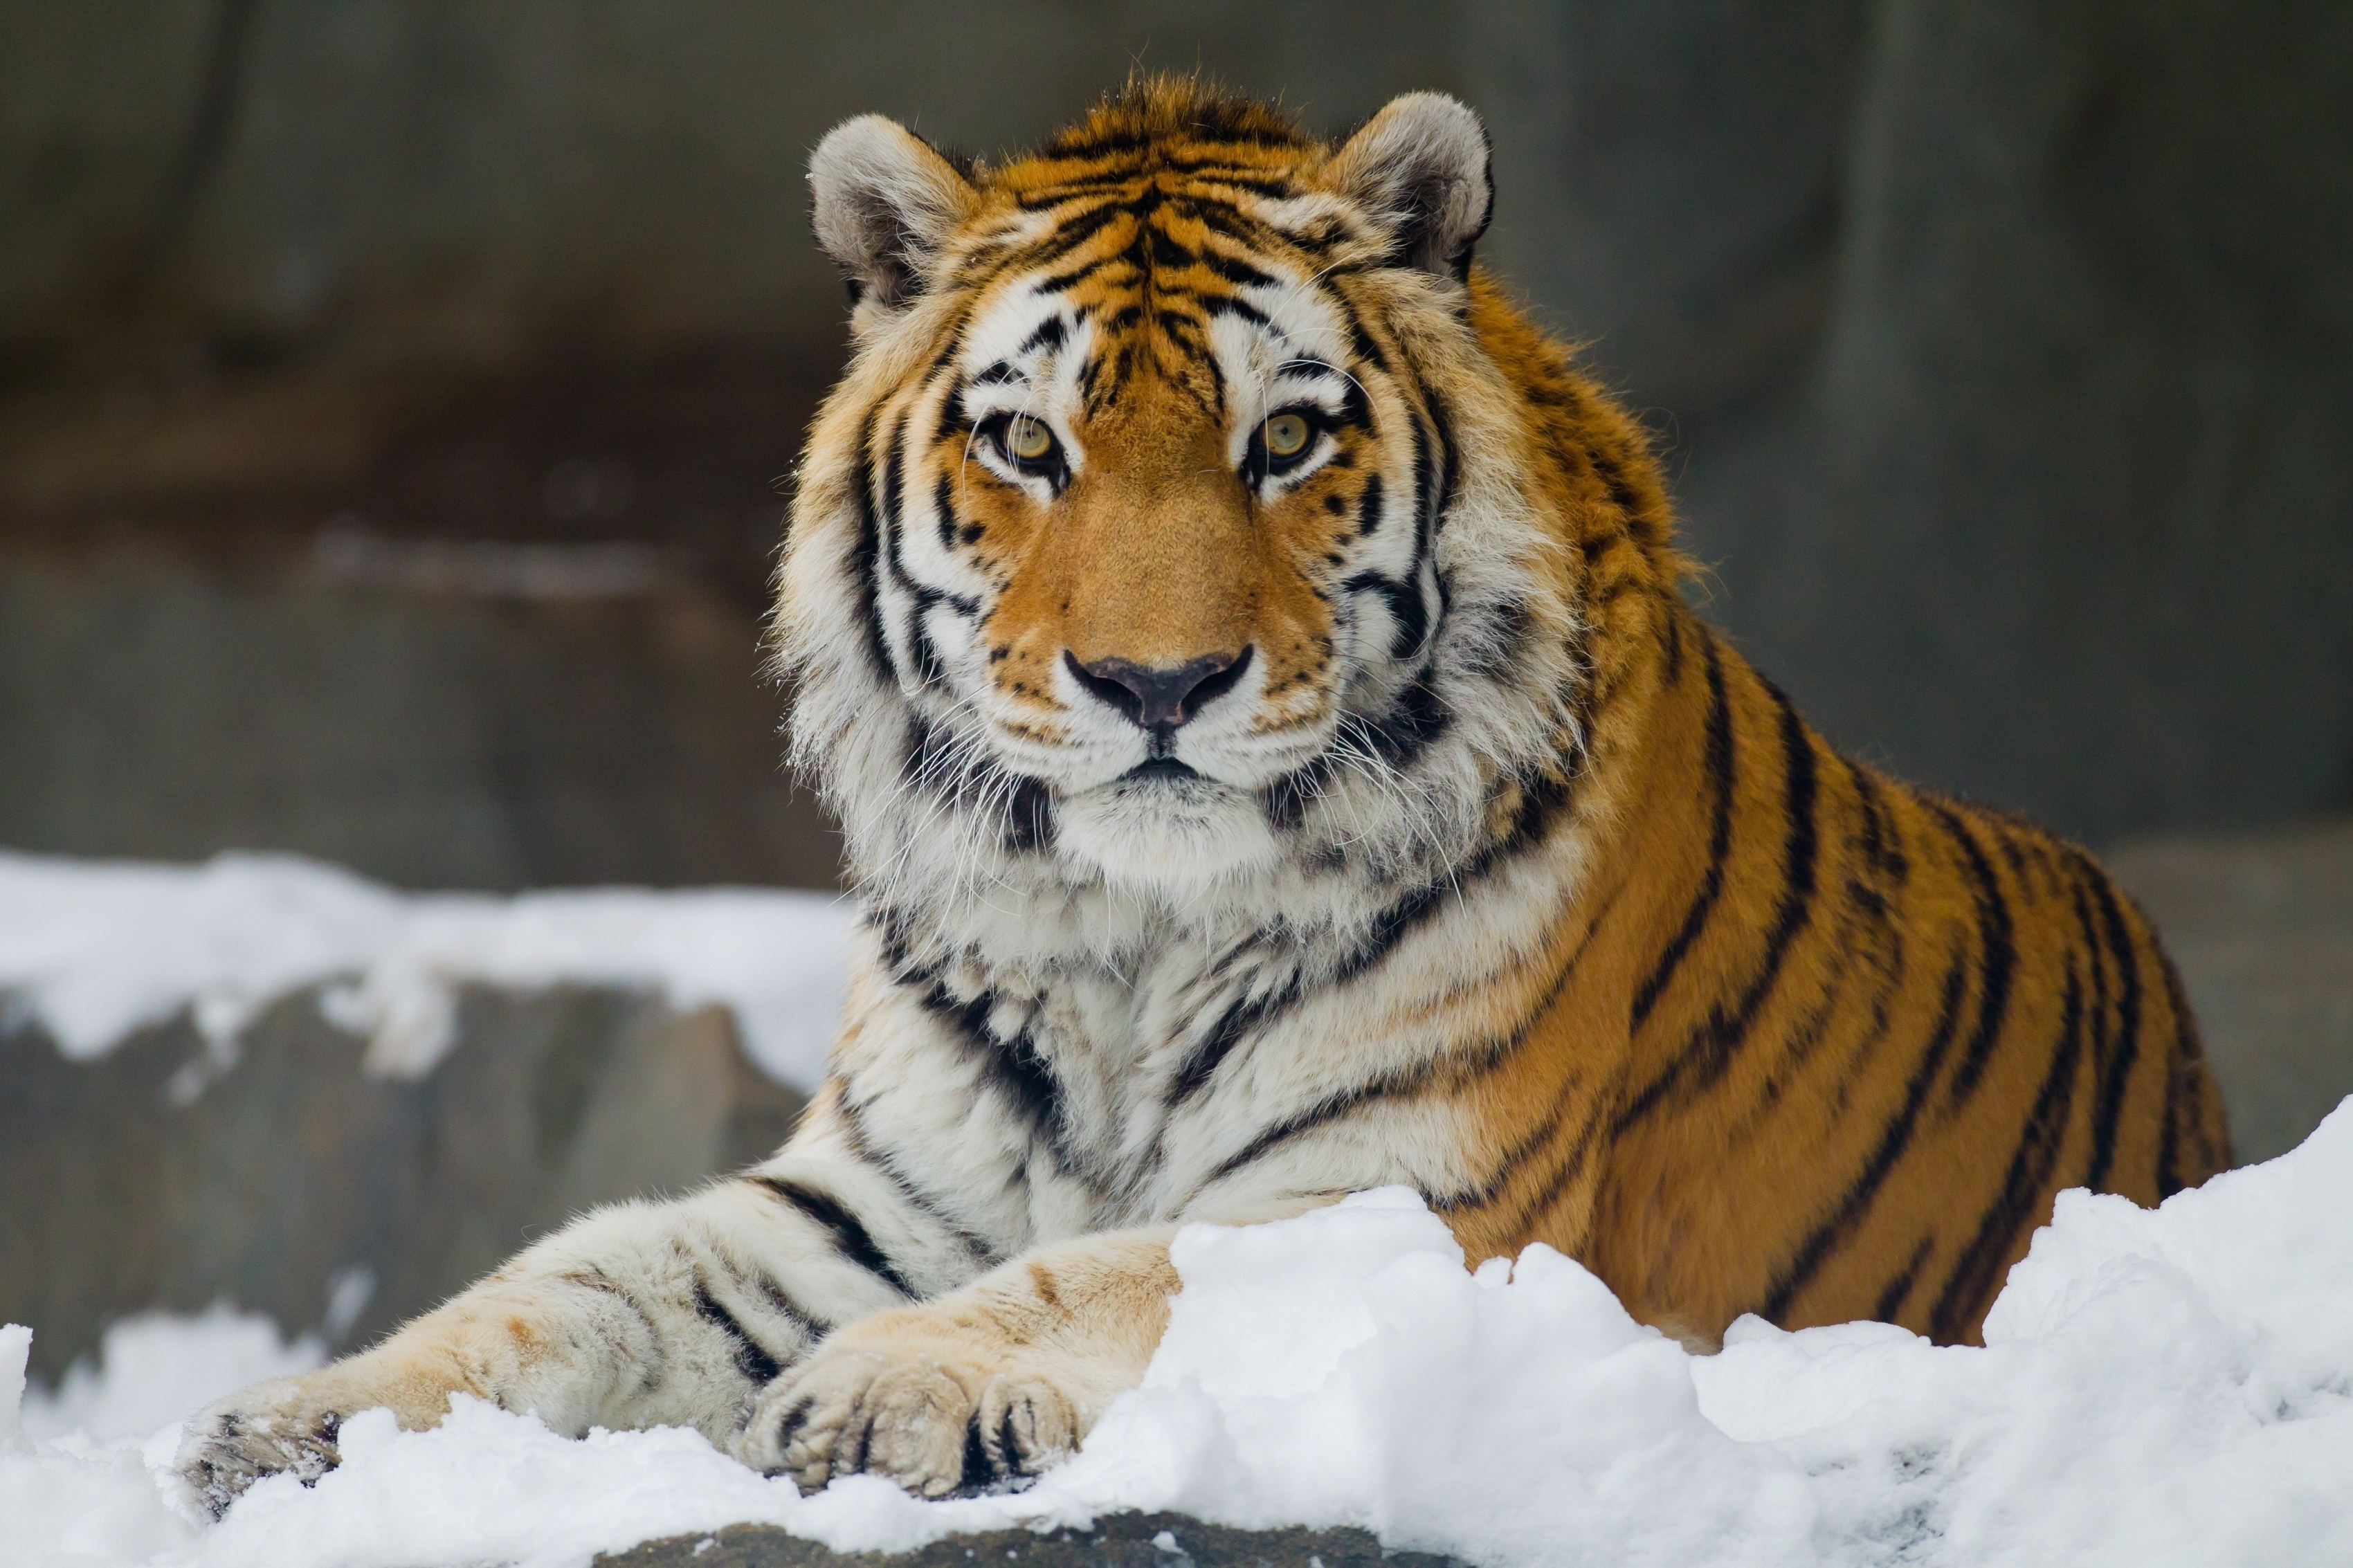 siberian tiger | hd wallpapers